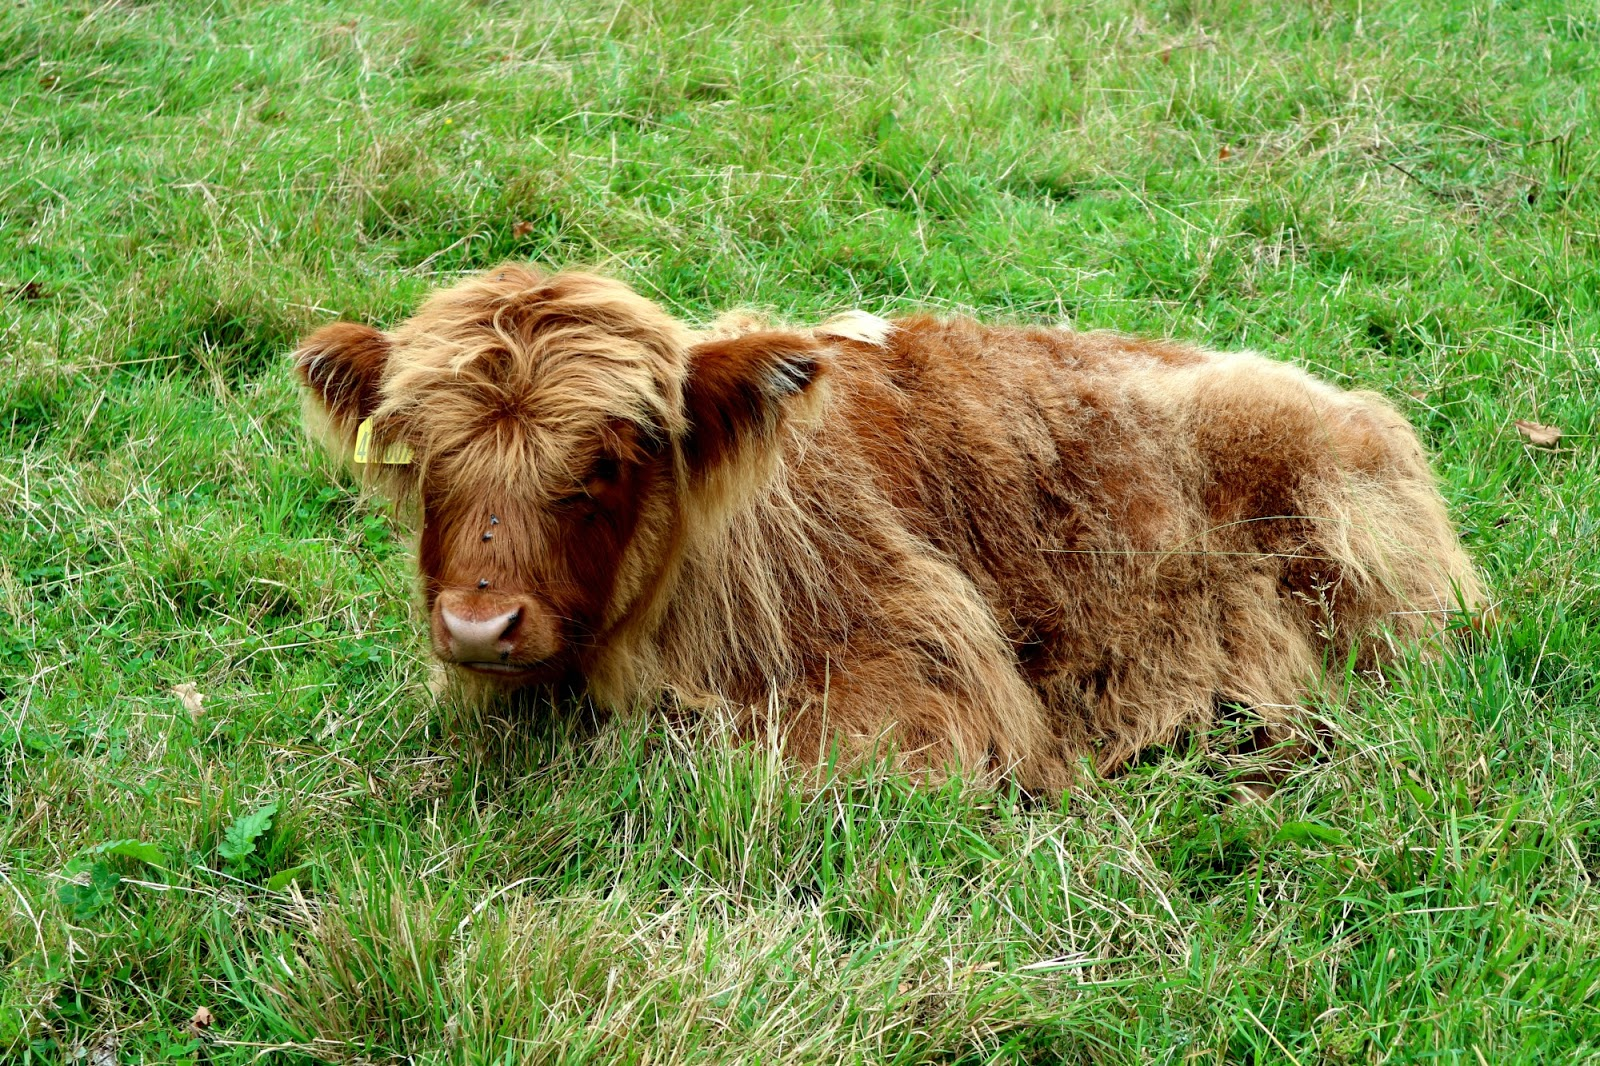 Where to see Highland Cows Glasgow